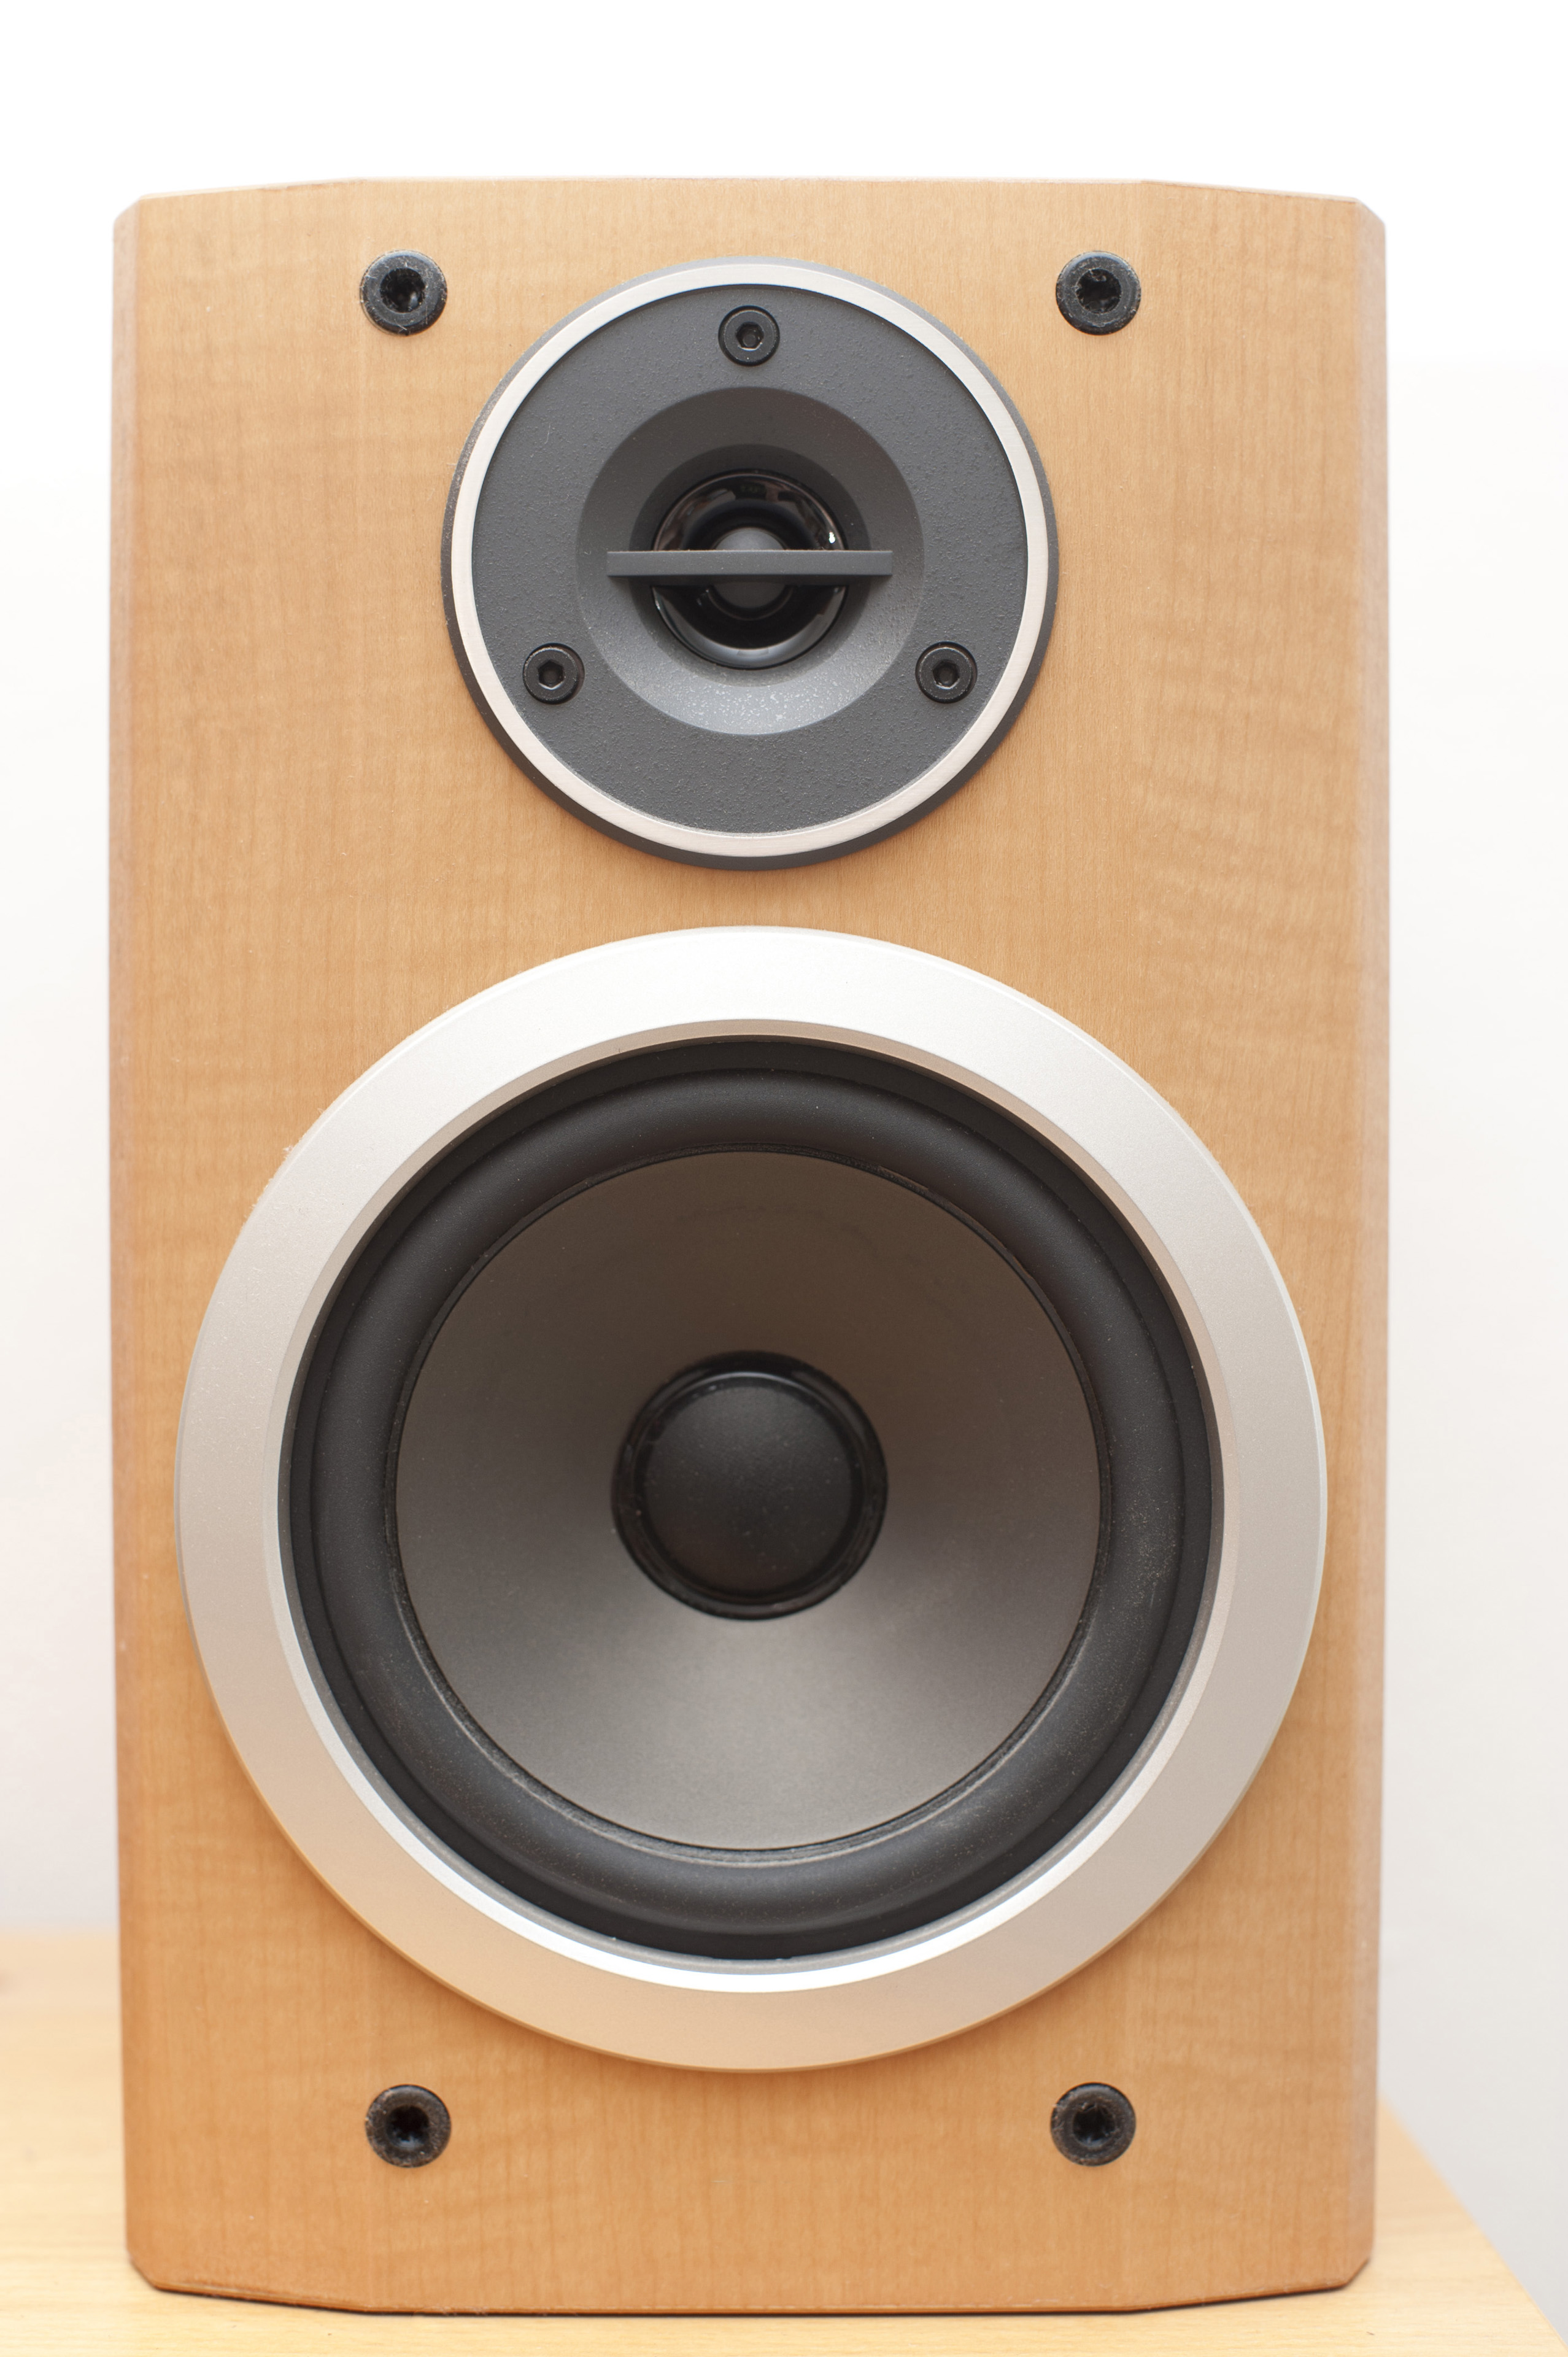 Plain brown speaker box with exposed speakers for sound and music broadcasting and entertainment over a white background